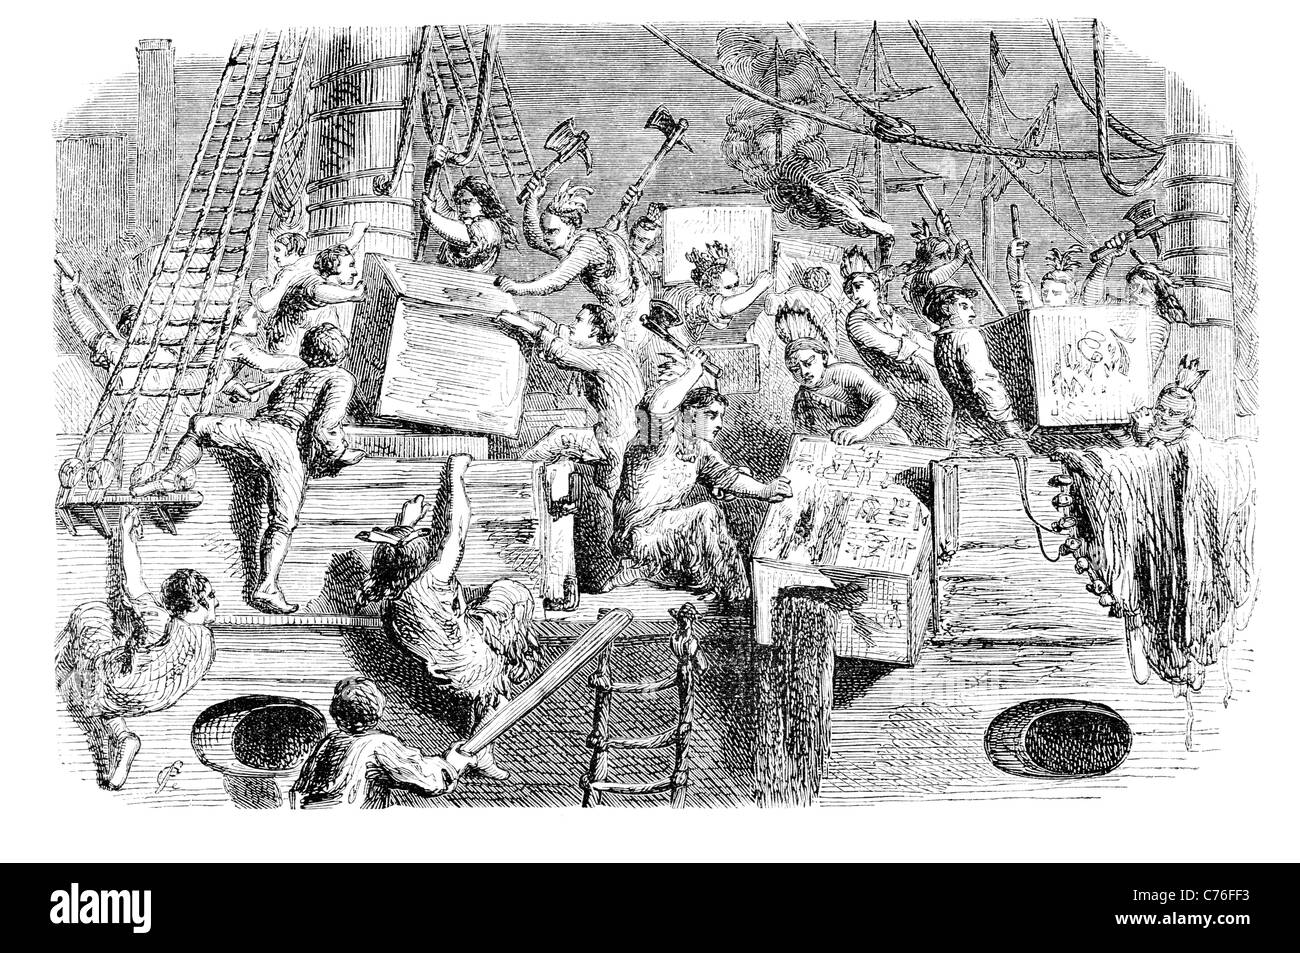 Boston Tea Party colonist colonists British colony Massachusetts government East India Company imported refused - Stock Image